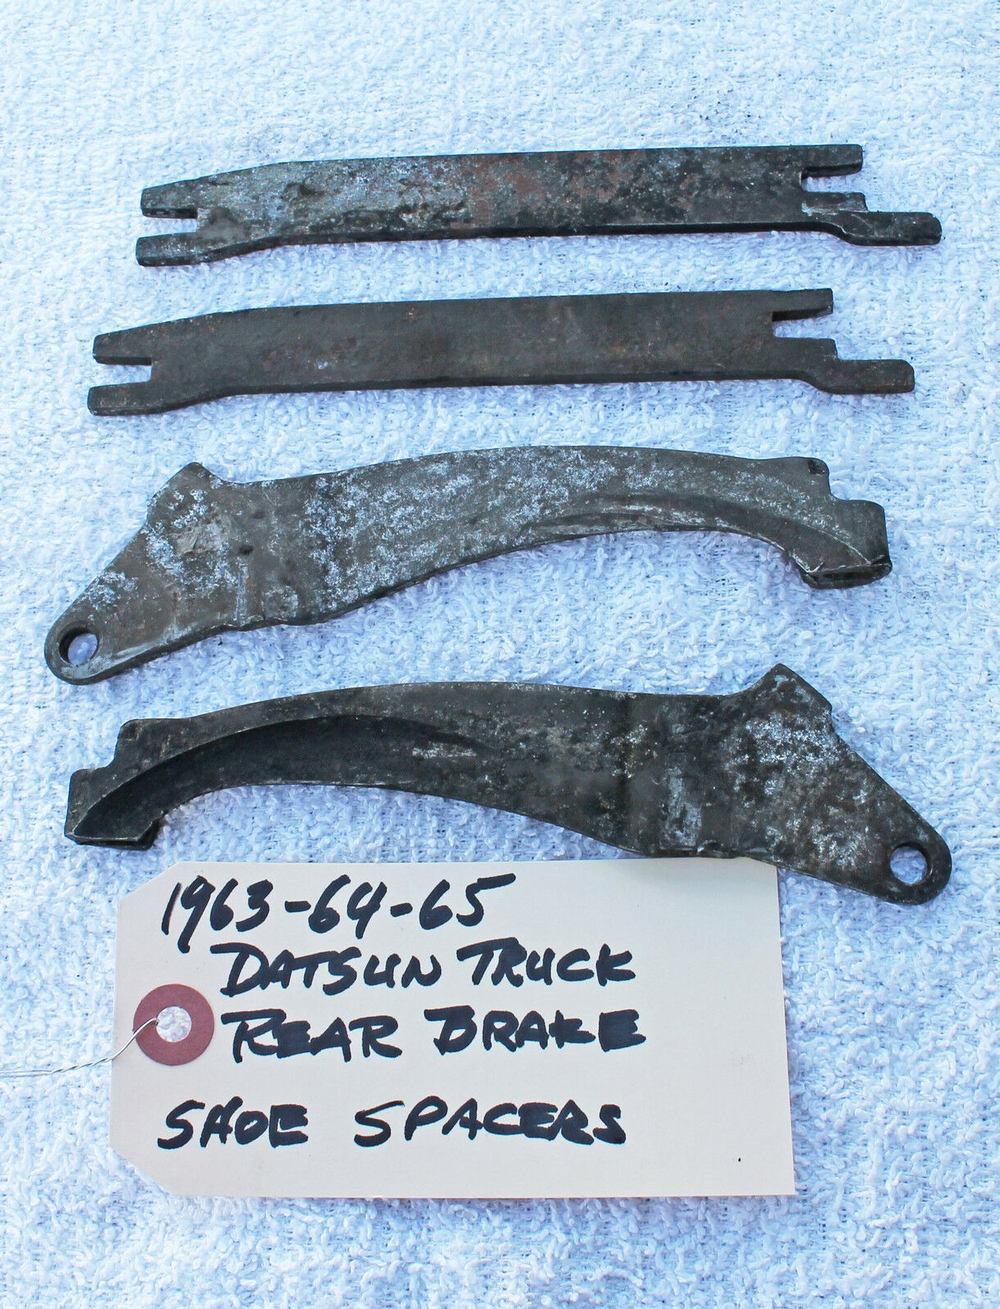 1963 - 1965 Datsun L-320 Pickup Truck Emergency Brake Levers and Spacers